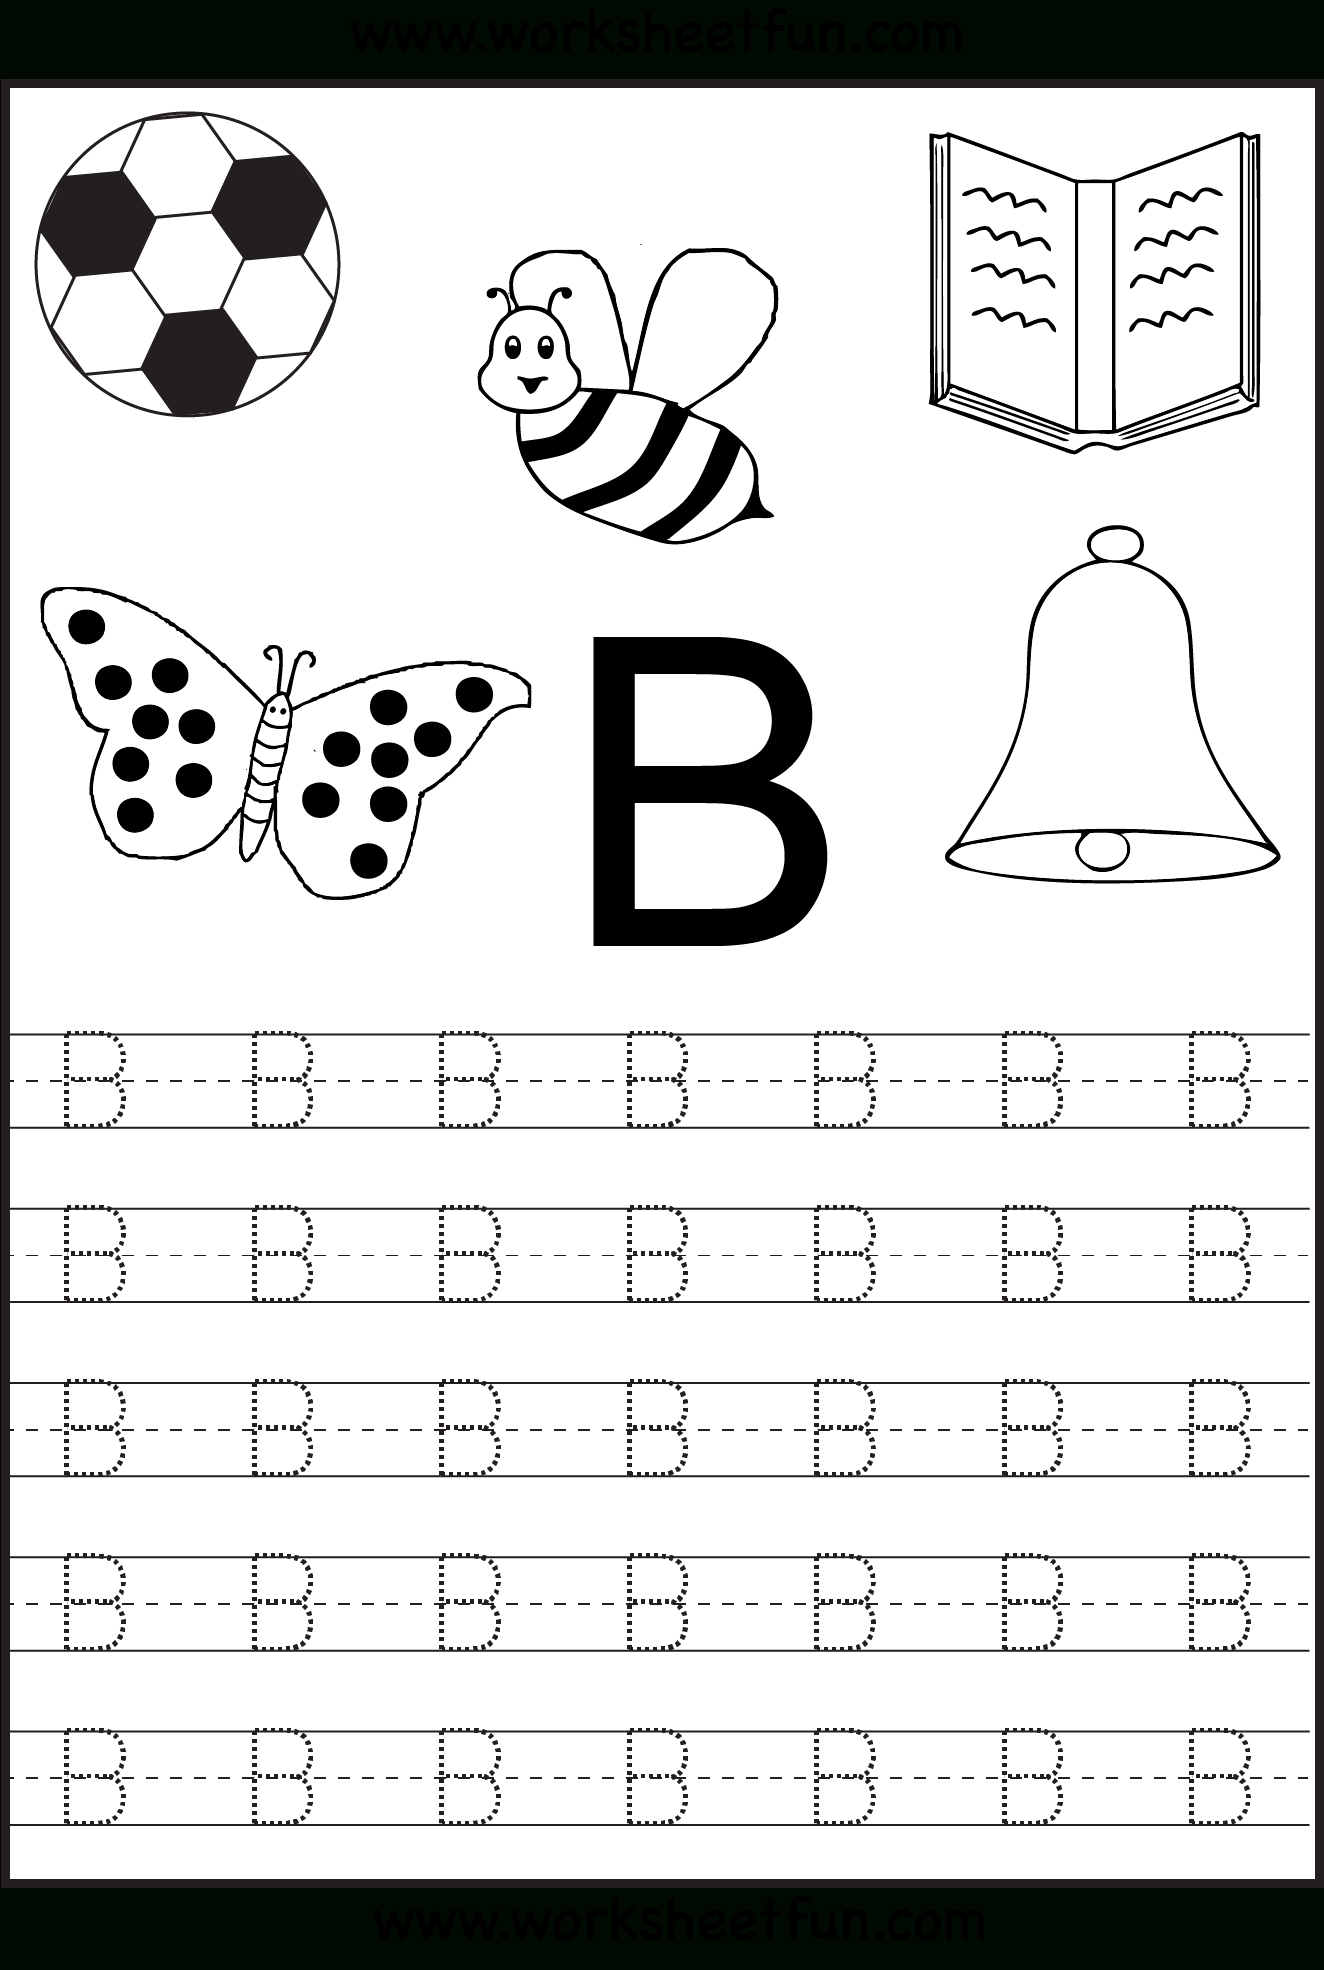 Free Printable Letter Tracing Worksheets For Kindergarten for Letter B Worksheets For Preschool Free